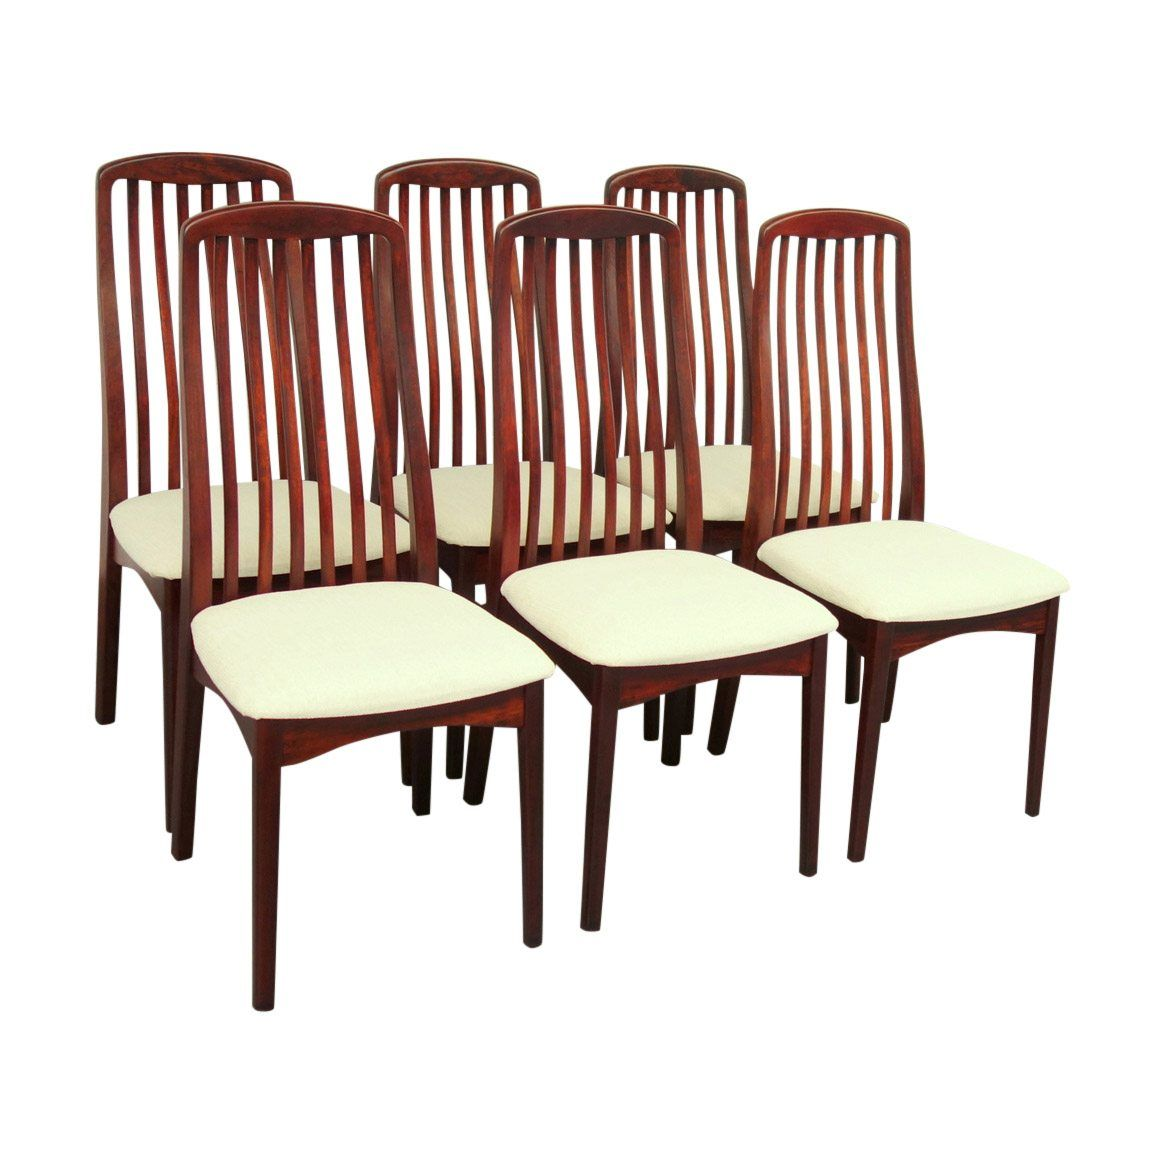 Swedish Mid Century Furniture Set Of Six Swedish Rosewood Dining Chairs By Svegards Markaryd